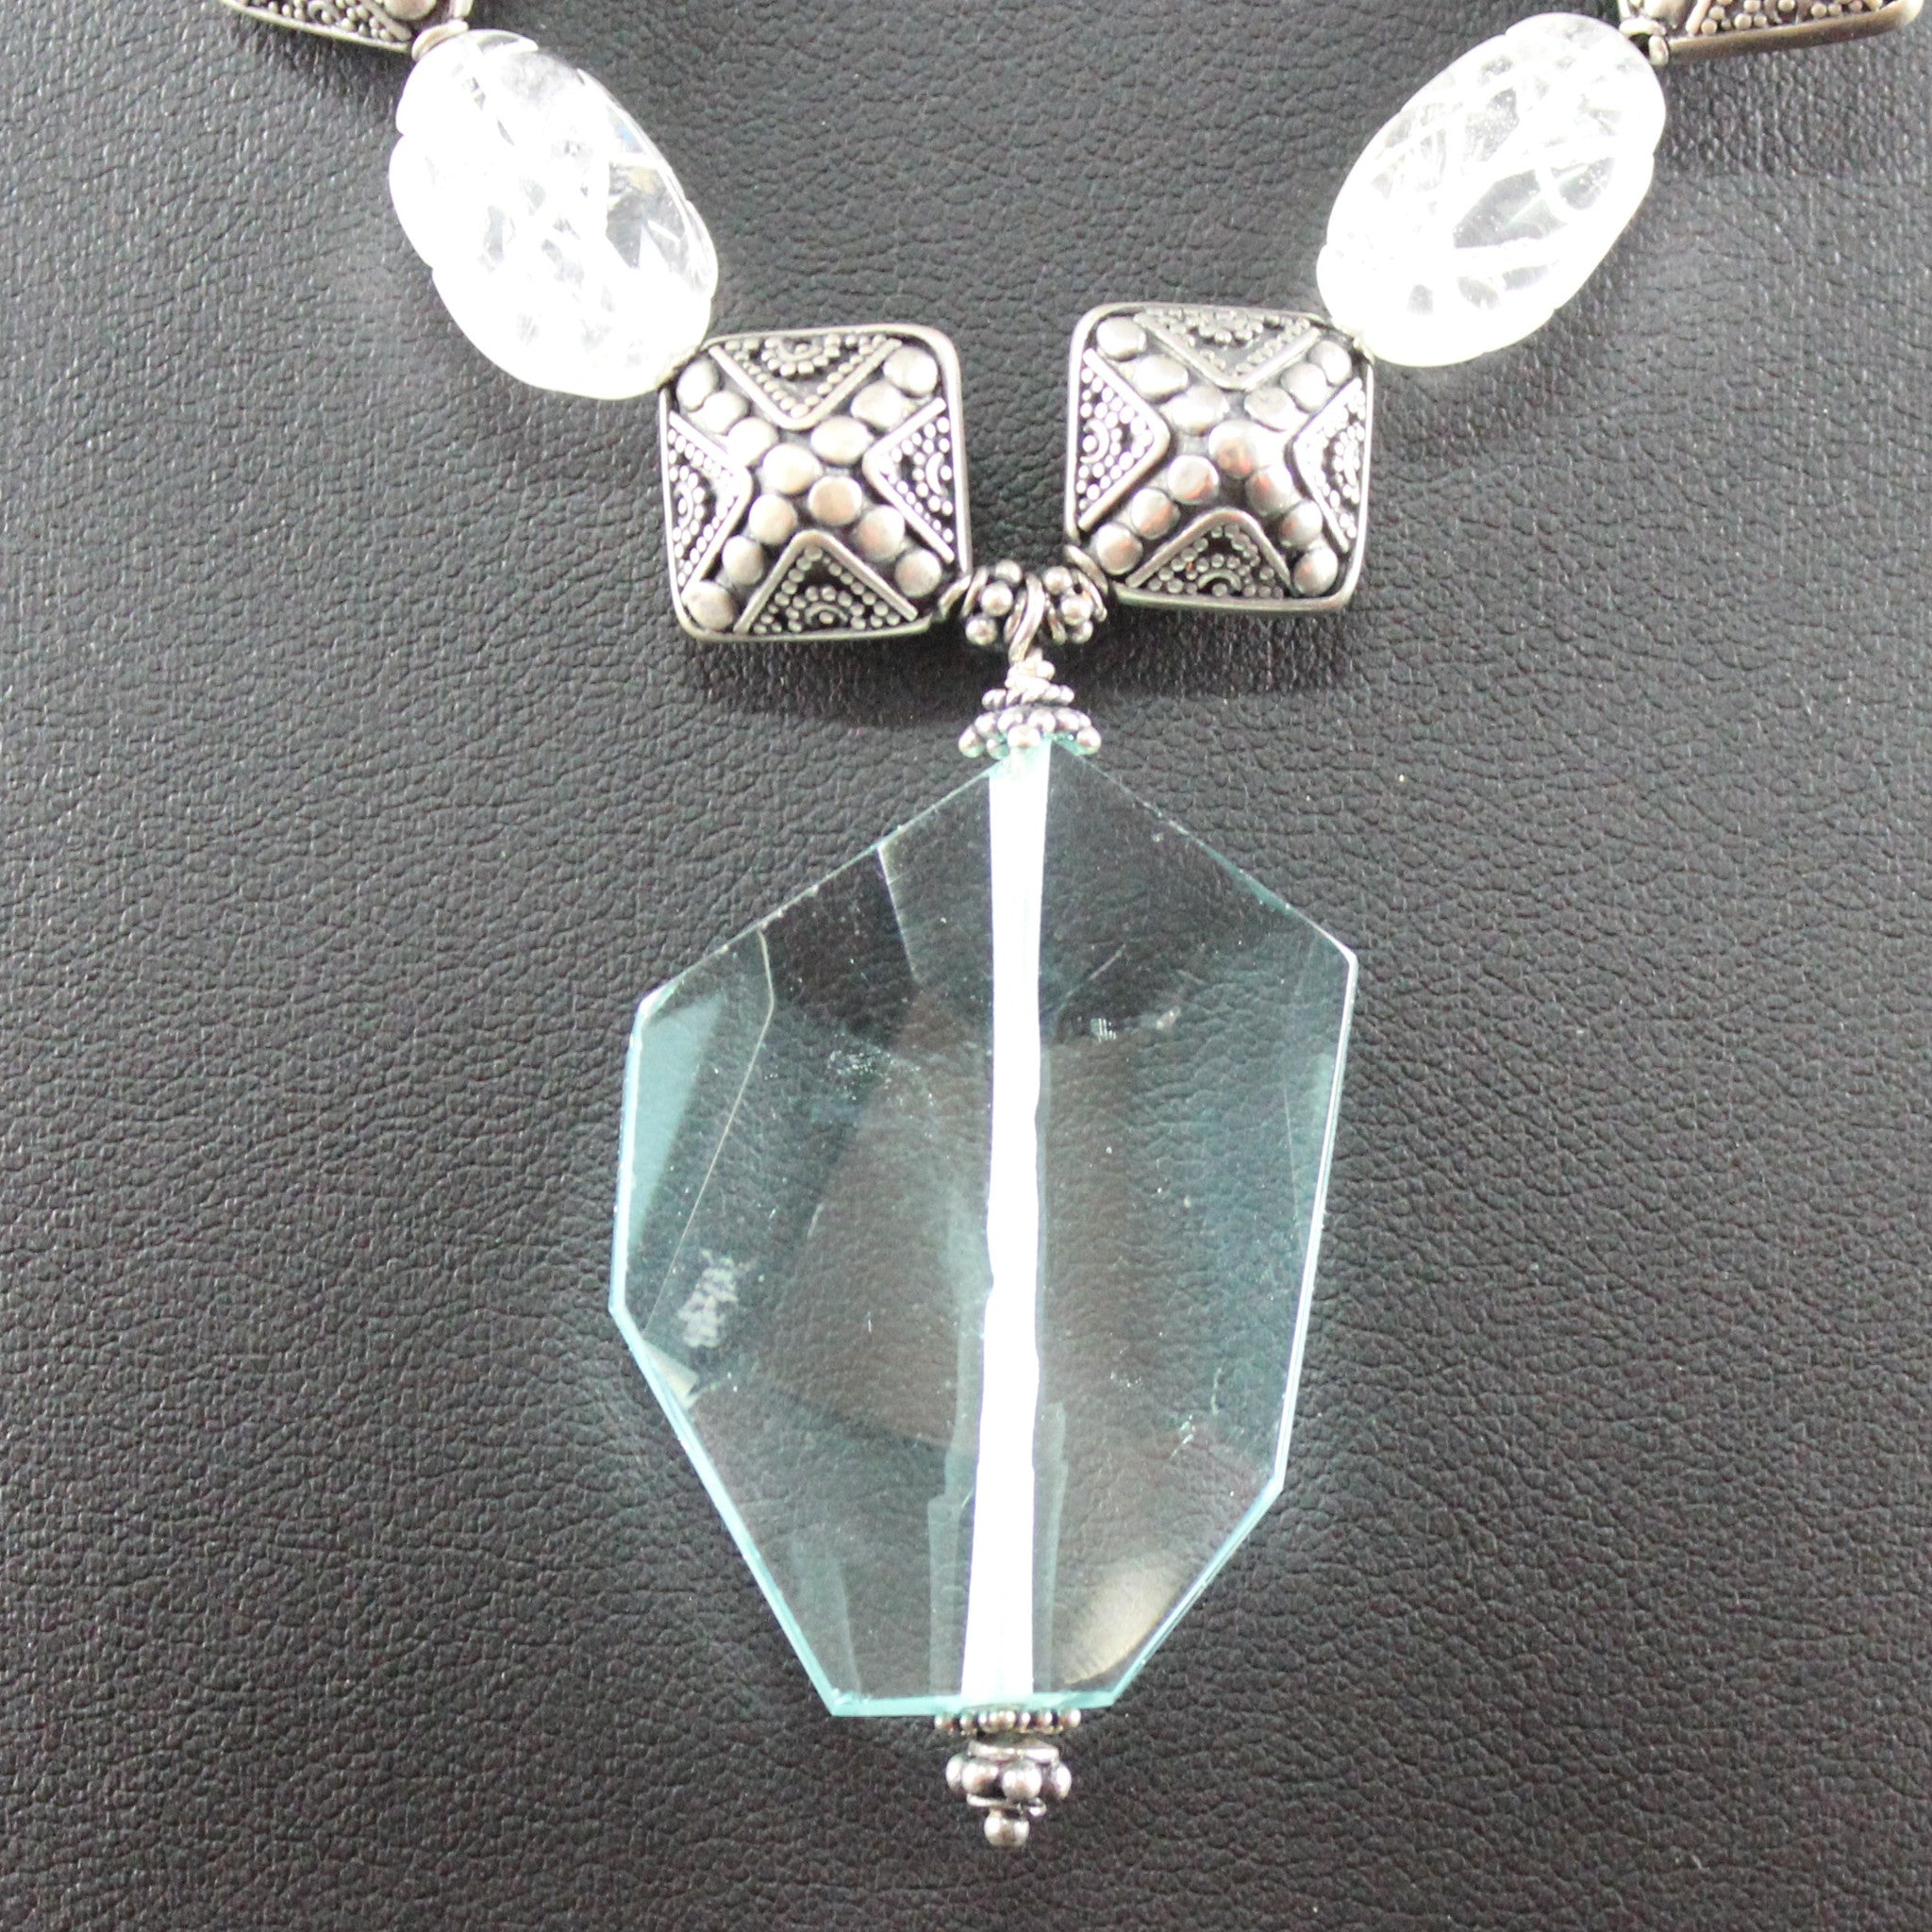 Susan M - Topaz Necklace